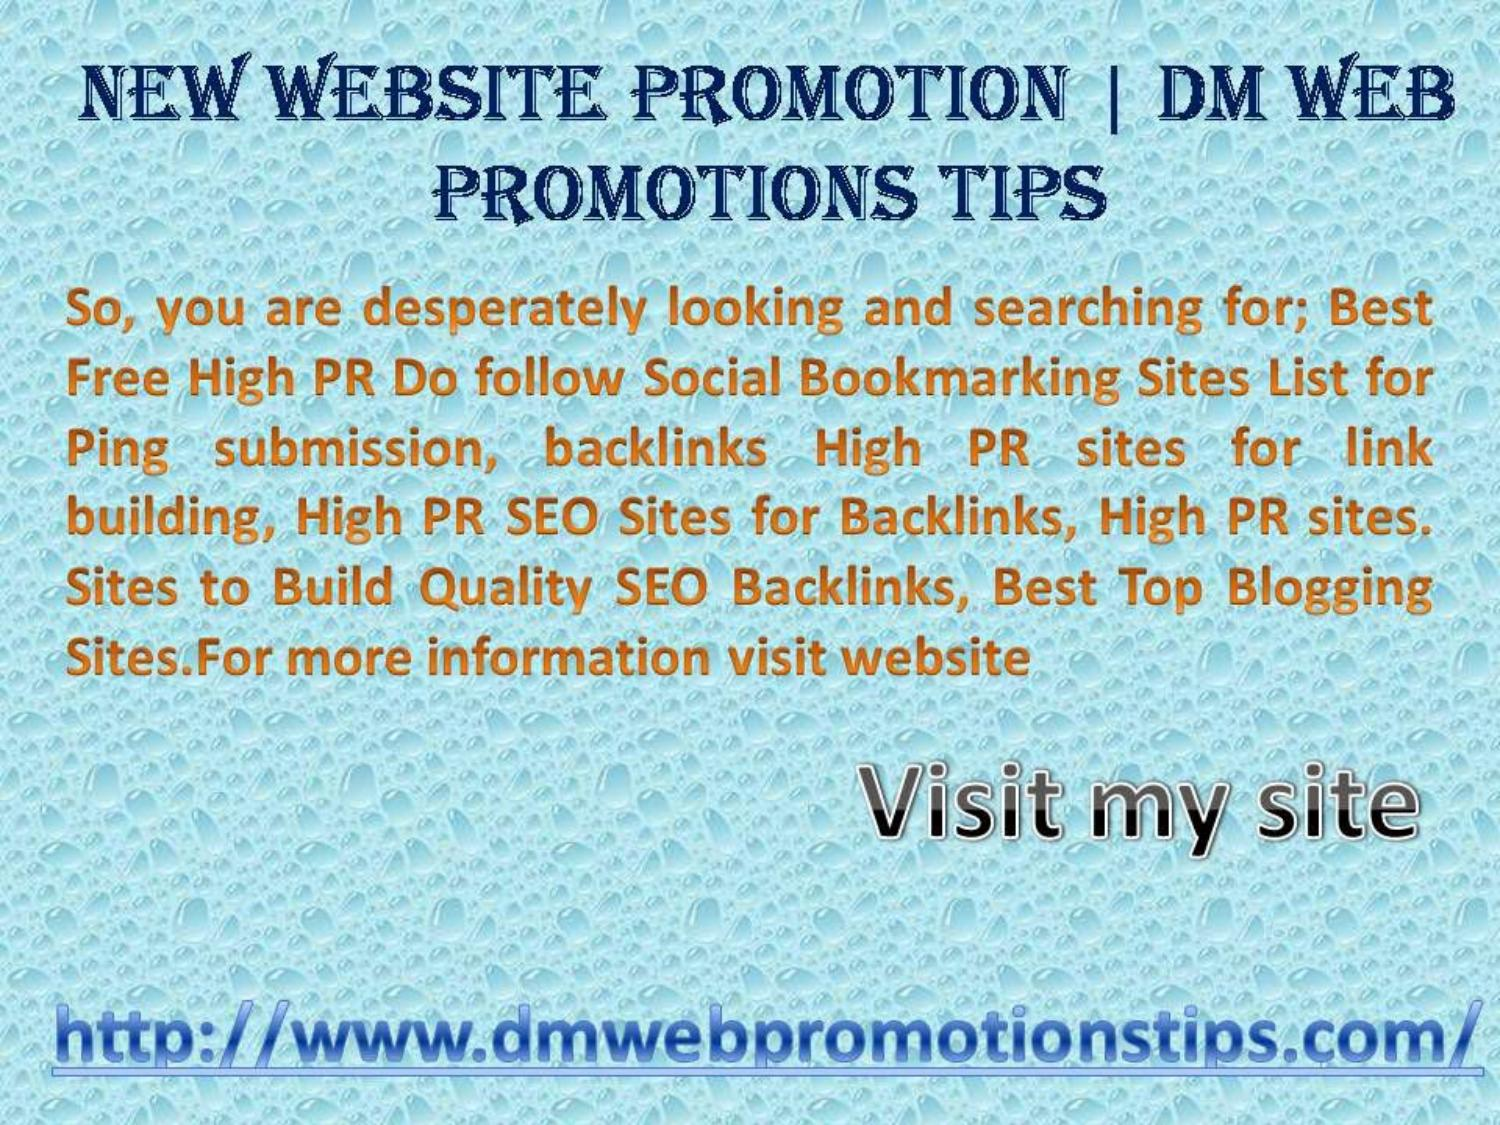 New Website Promotion | DM Web Promotions Tips by Sumit